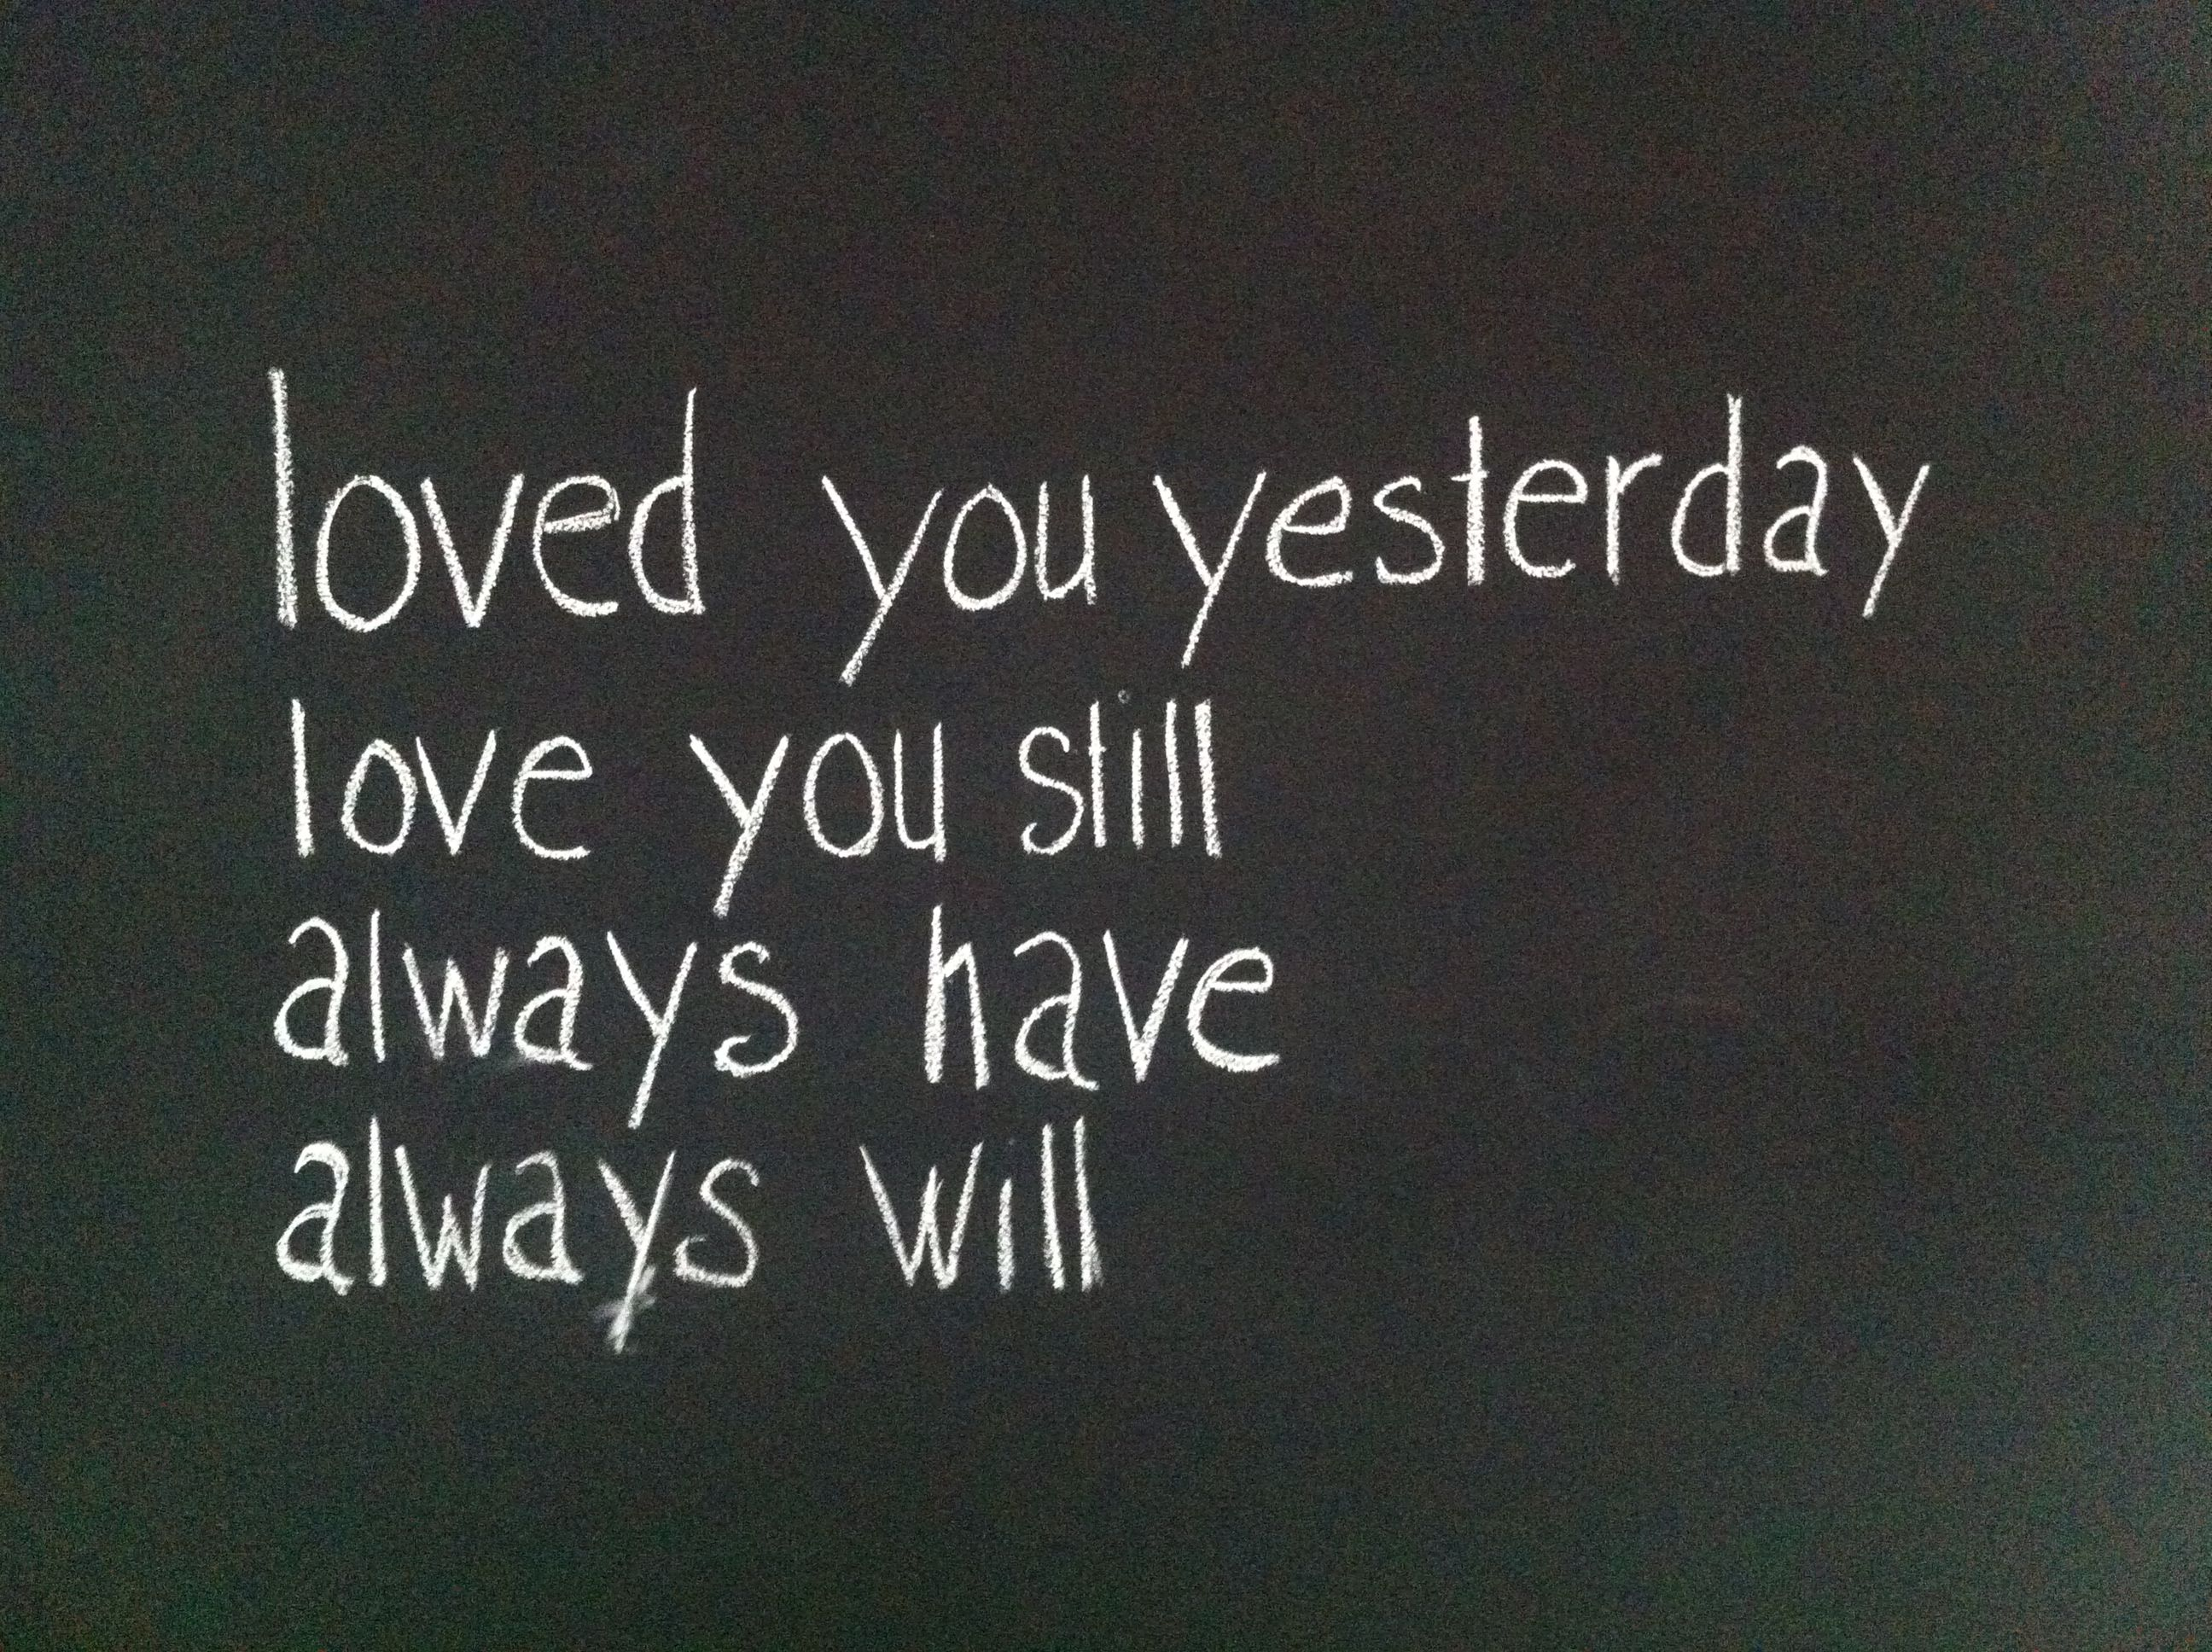 Loved You Yesterday Love You Still Quote: Loved You Yesterday, Love You Still, Always Have, Always